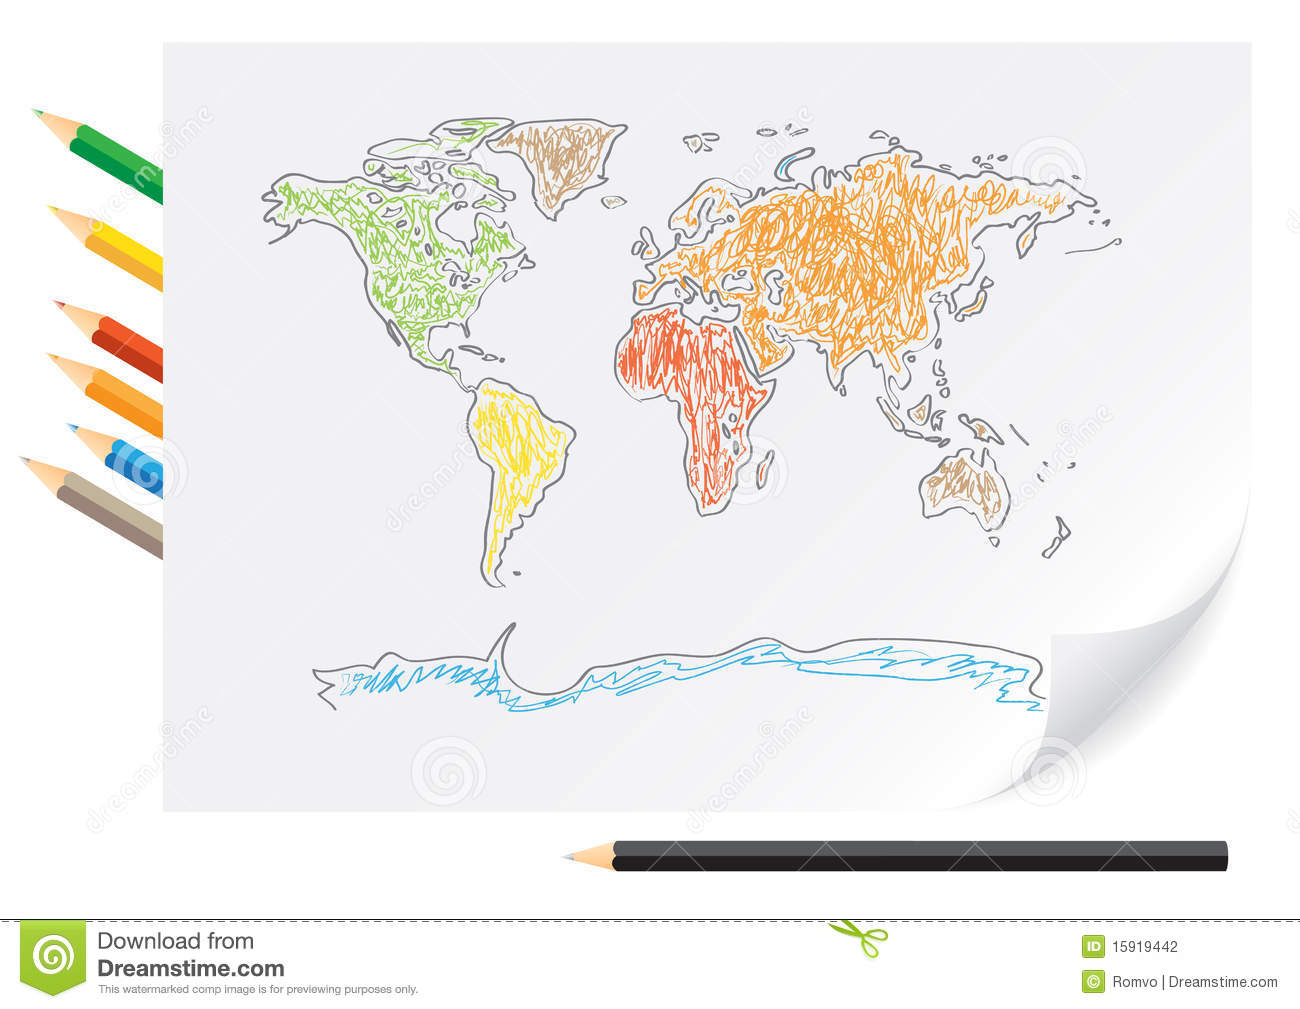 Drawing World Map By A Color Pencils Stock Vector Illustration of